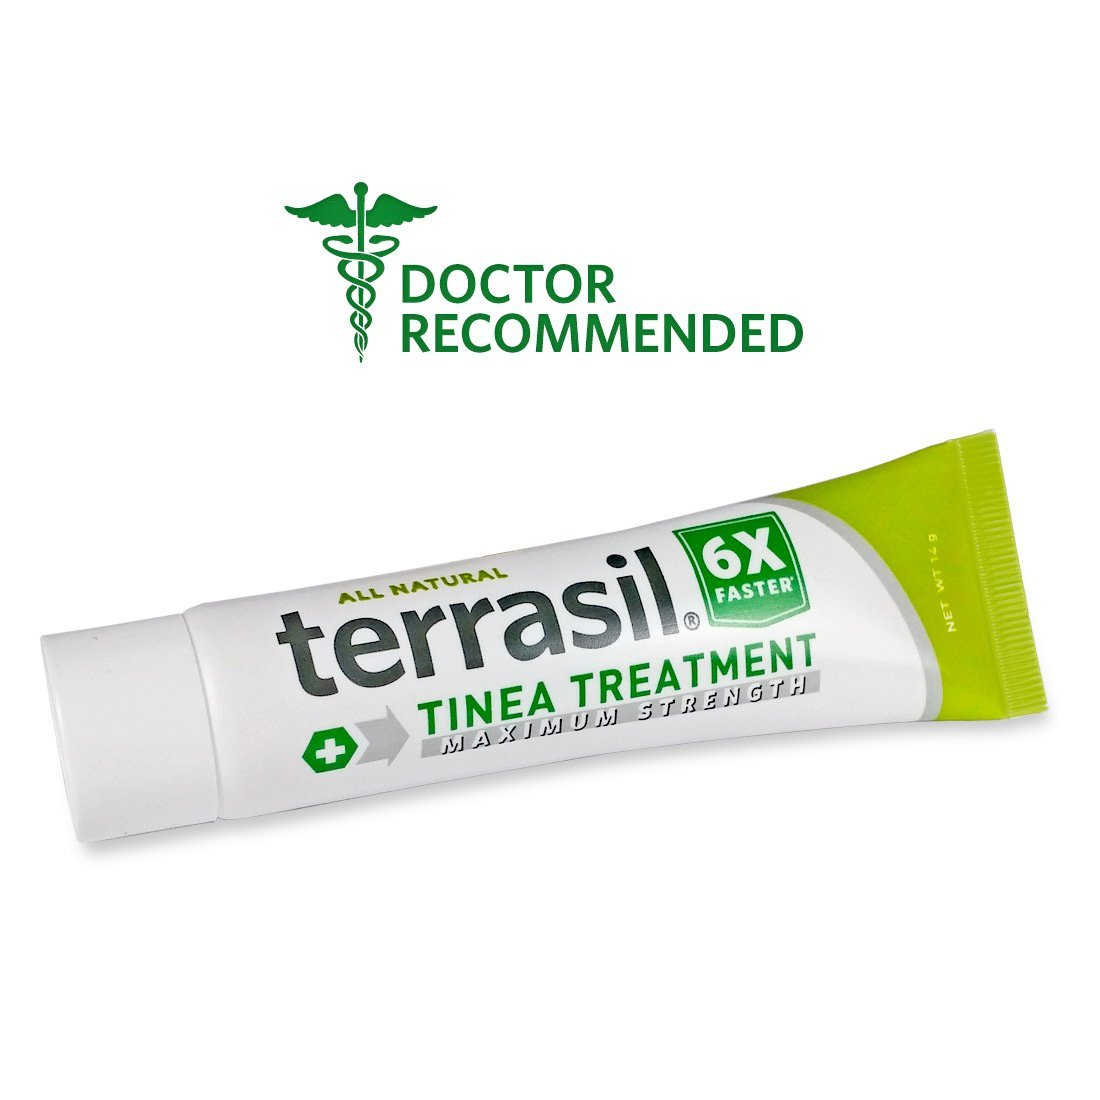 Terrasil® Tinea Treatment MAX - 6x Faster Relief, 100% Guaranteed, Patented All Natural Therapeutic Anti-fungal Ointment for Tinea Versicolor, Corporis, Cruris, and Pedis 14g by Aidance Skincare & Topical Solutions